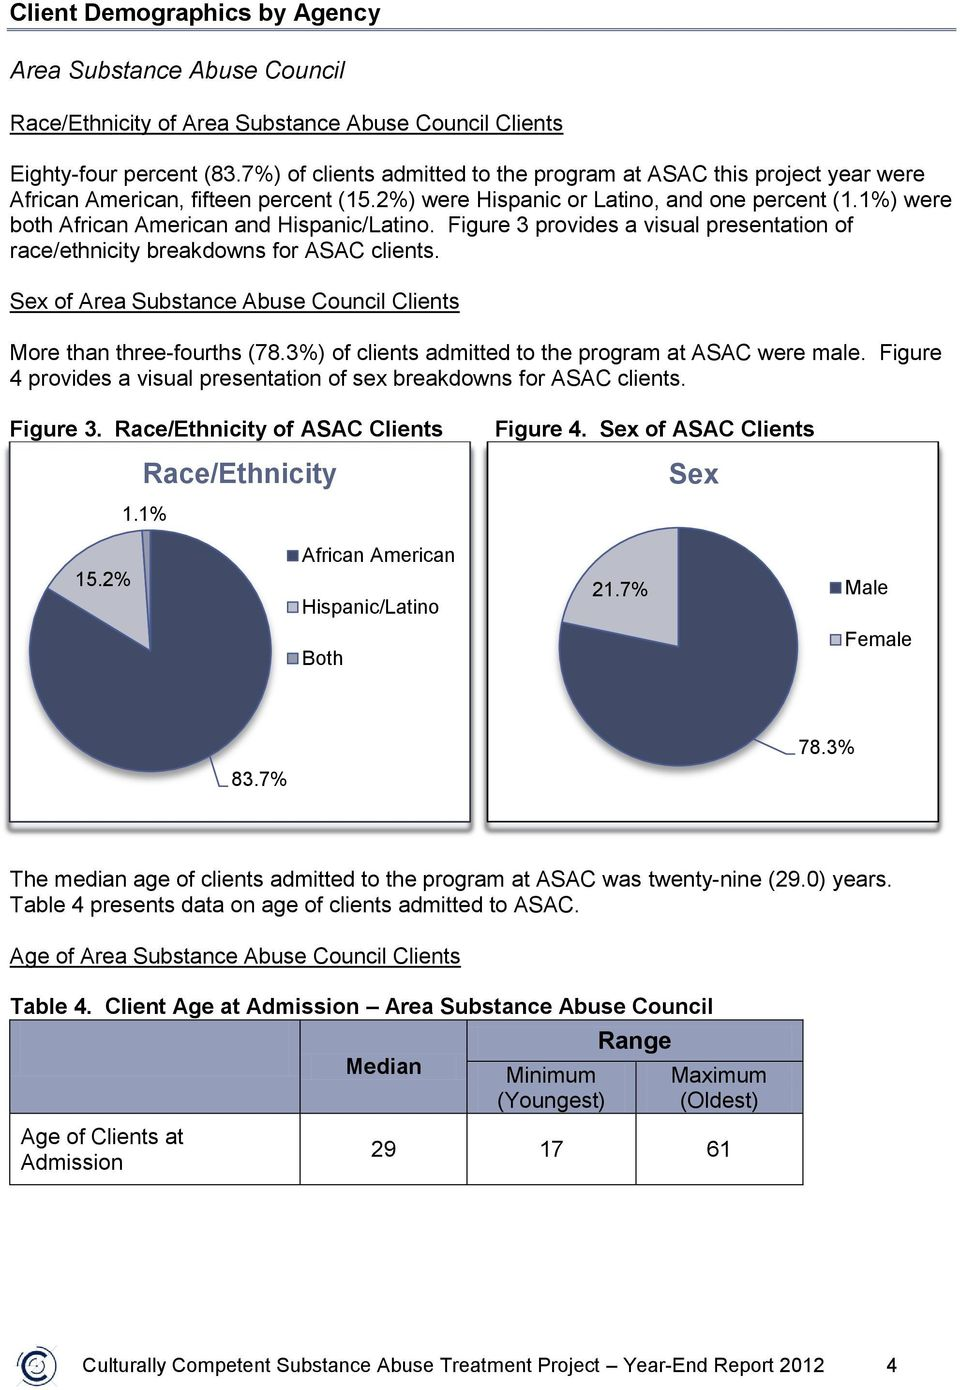 1%) were both African American and Hispanic/Latino. Figure 3 provides a visual presentation of race/ethnicity breakdowns for ASAC clients.